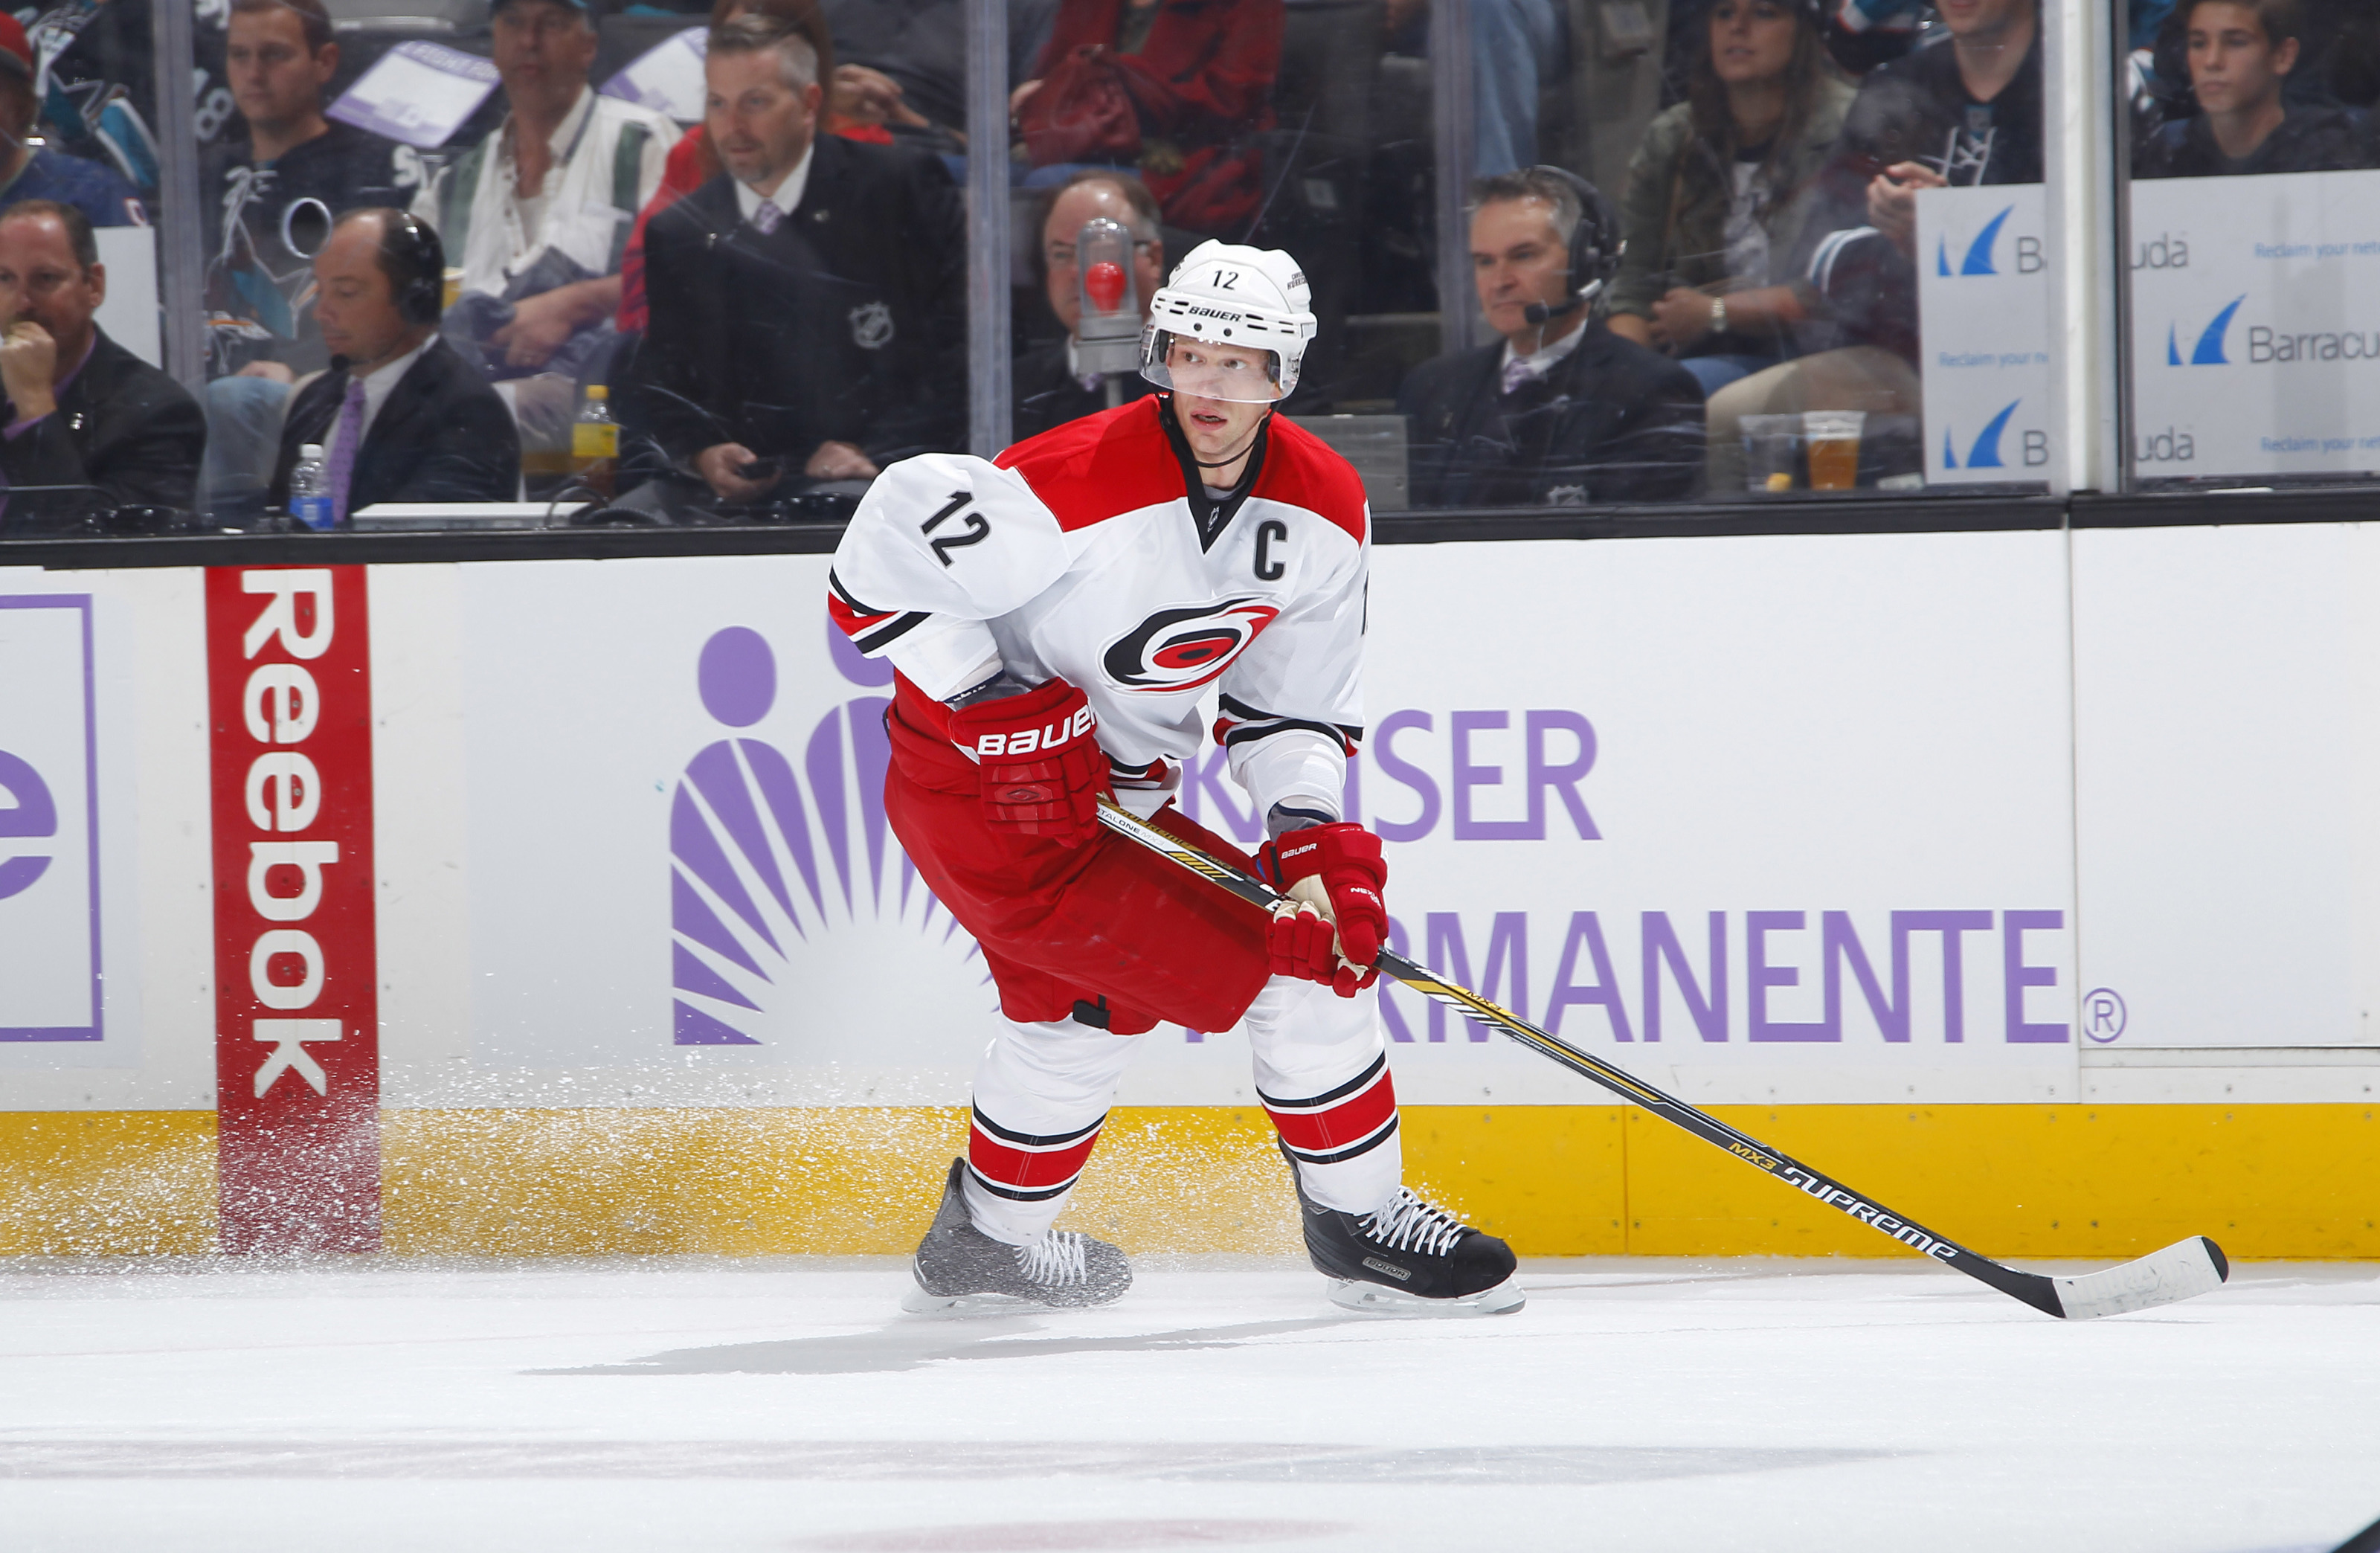 Carolina Hurricanes: The Greatest Player in Franchise History